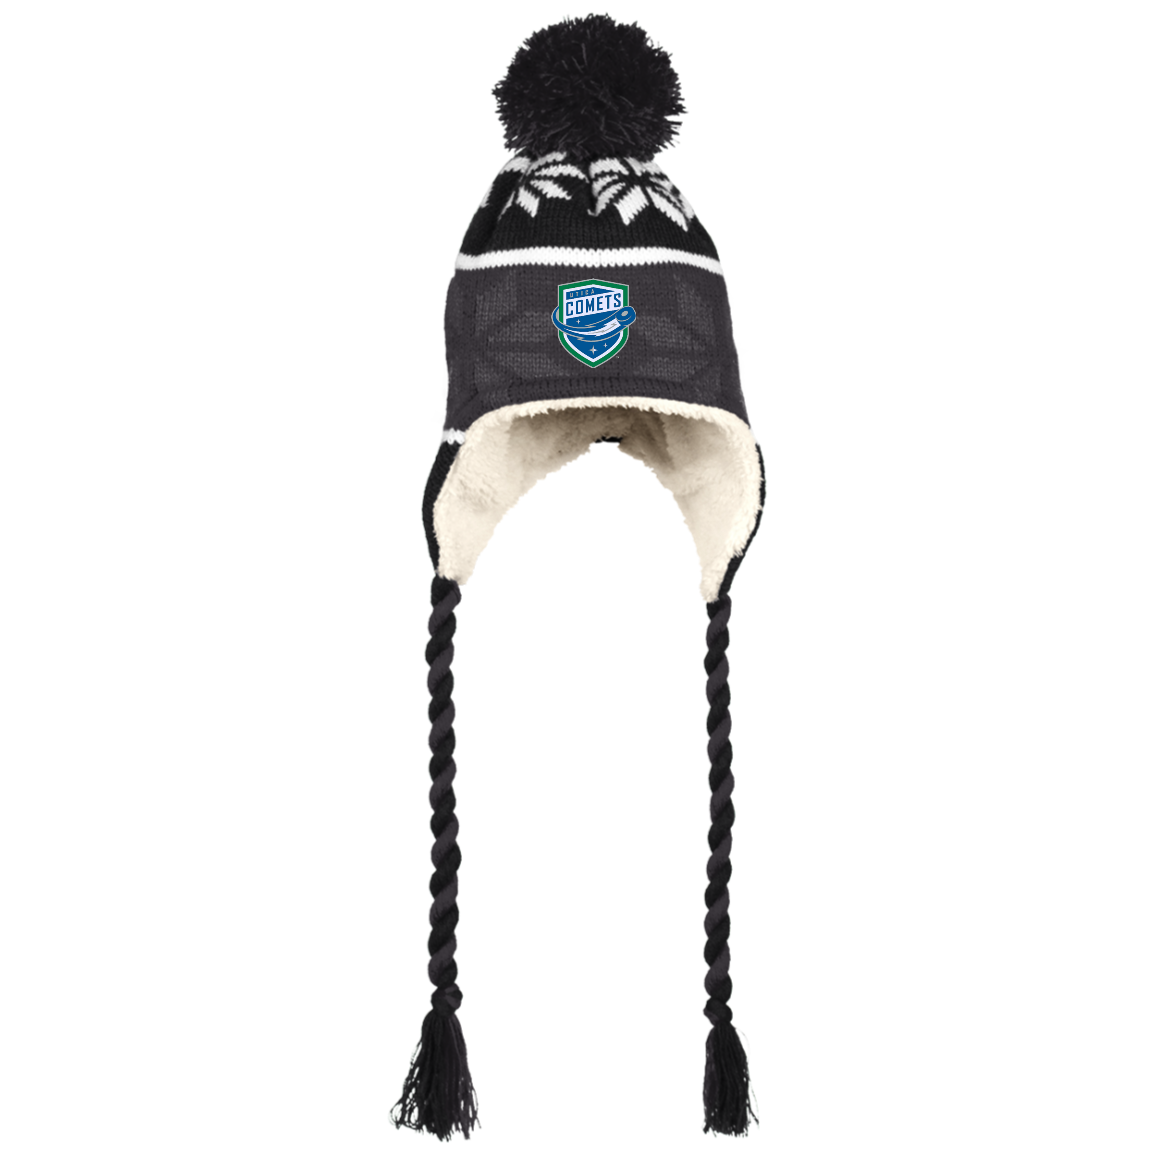 Utica Comets Winter Hat with Ear Flaps and Braids – ahlstore.com a98b8531d84